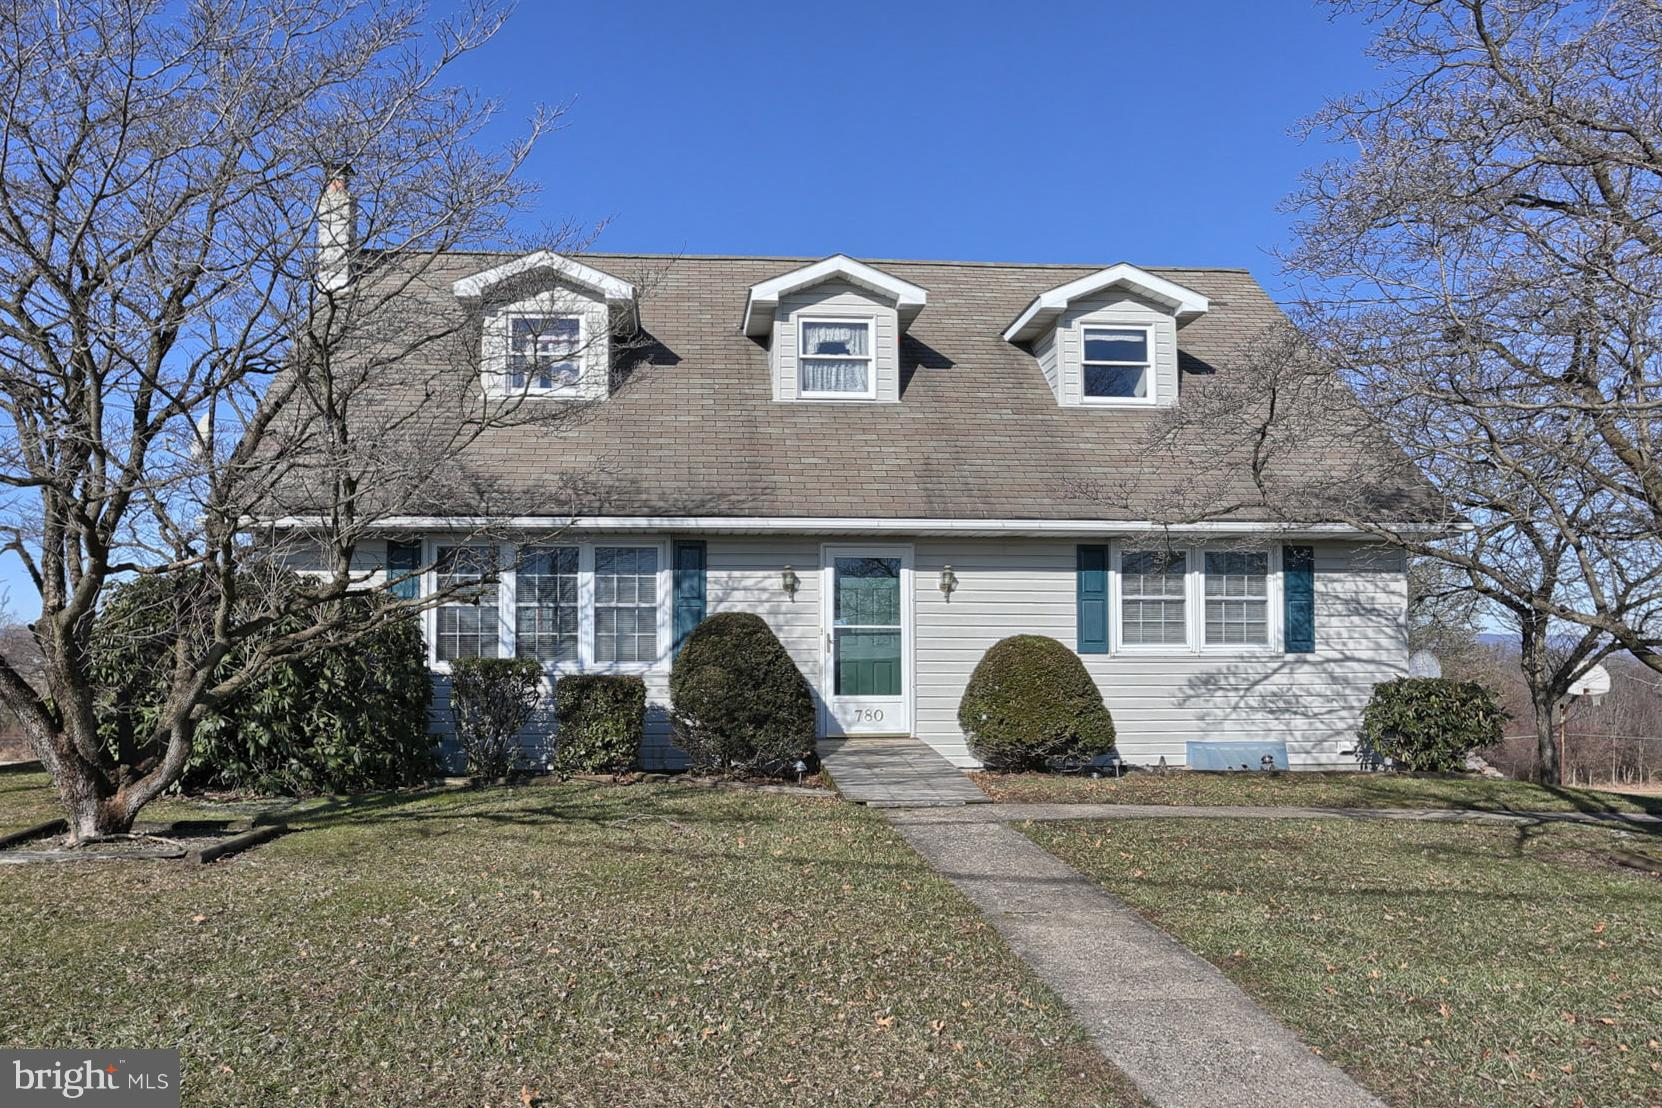 780 SHOEY ROAD, MOHRSVILLE, PA 19541